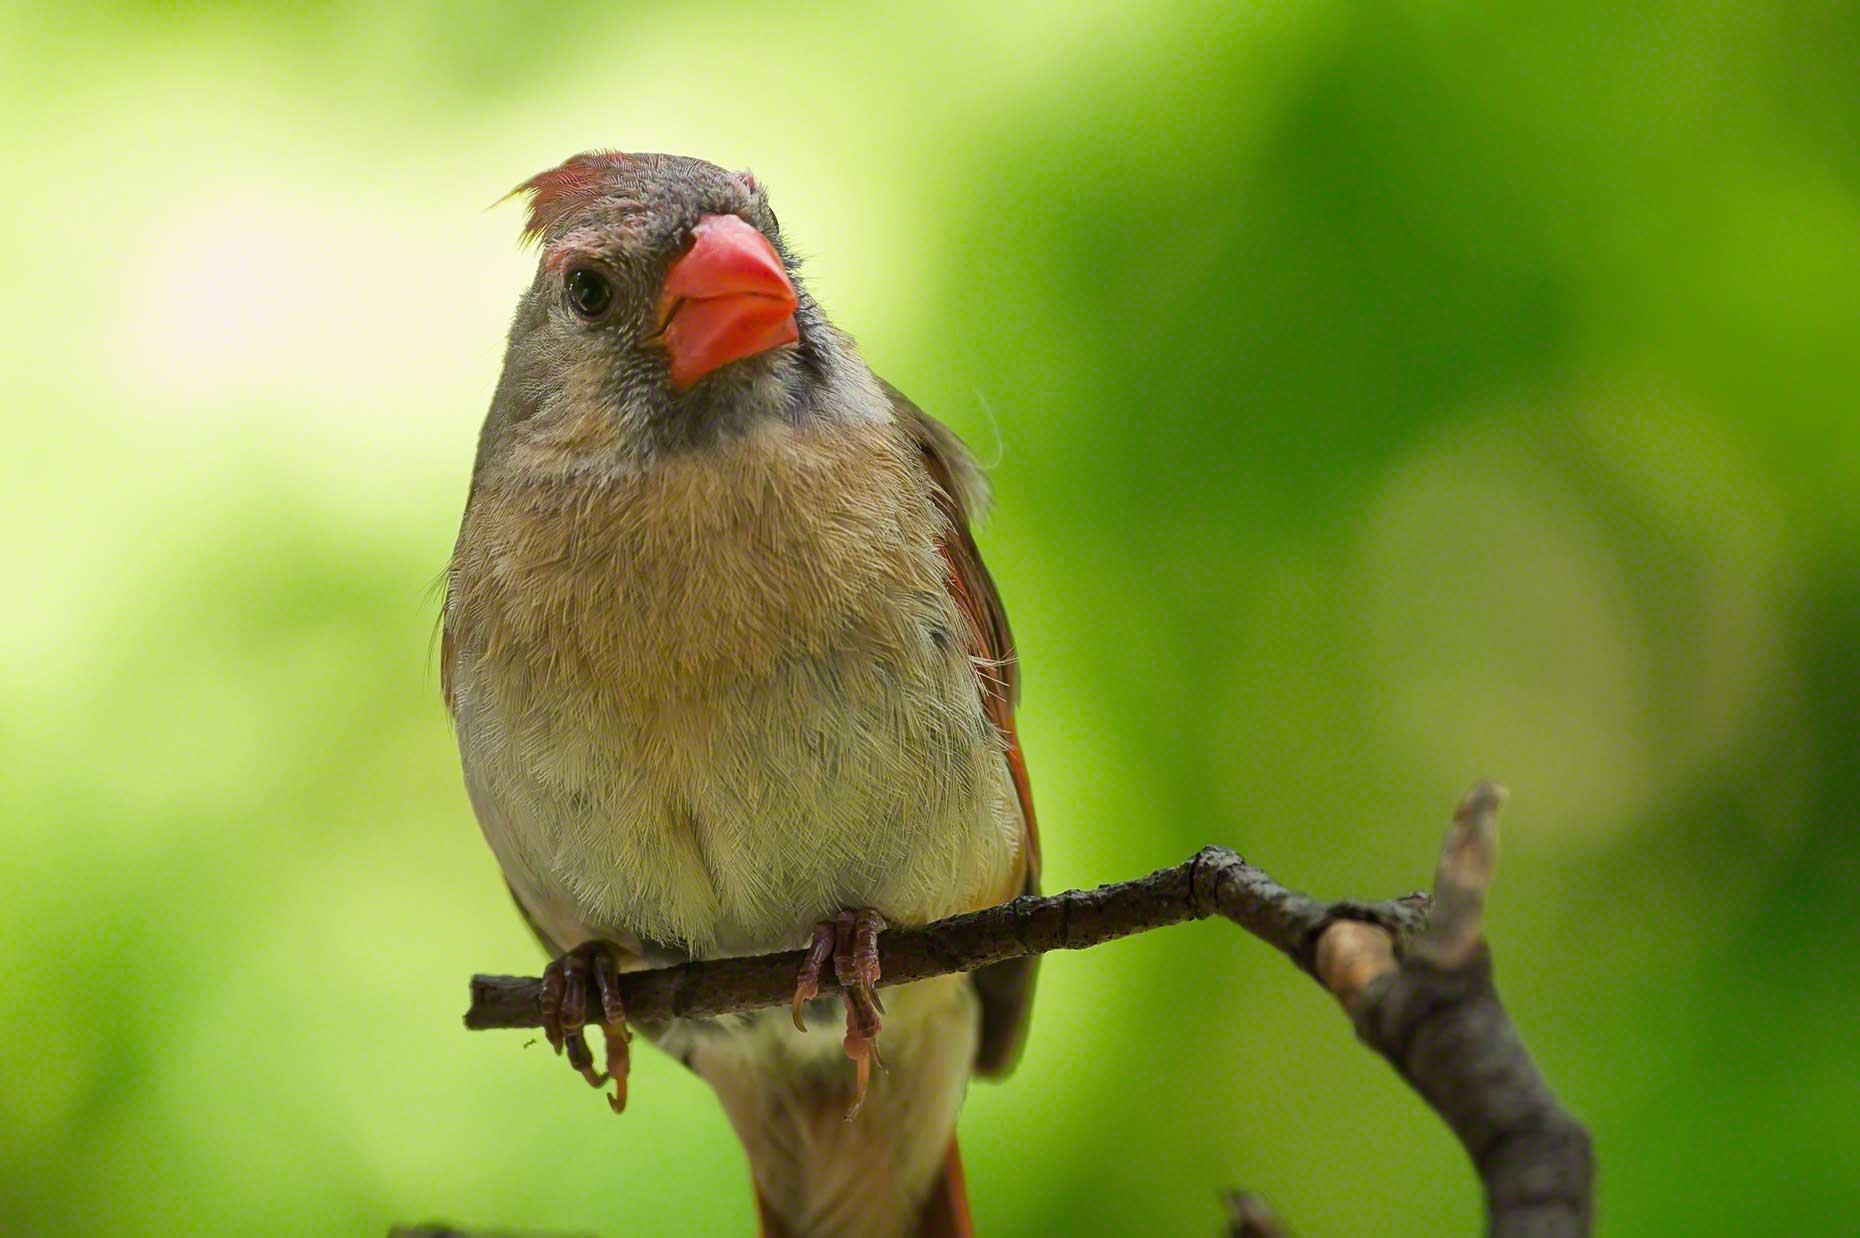 FritzImages | Travel and Outdoor Digital Images | image name = FI 20140731 961 NY Summer Bird Cardnal